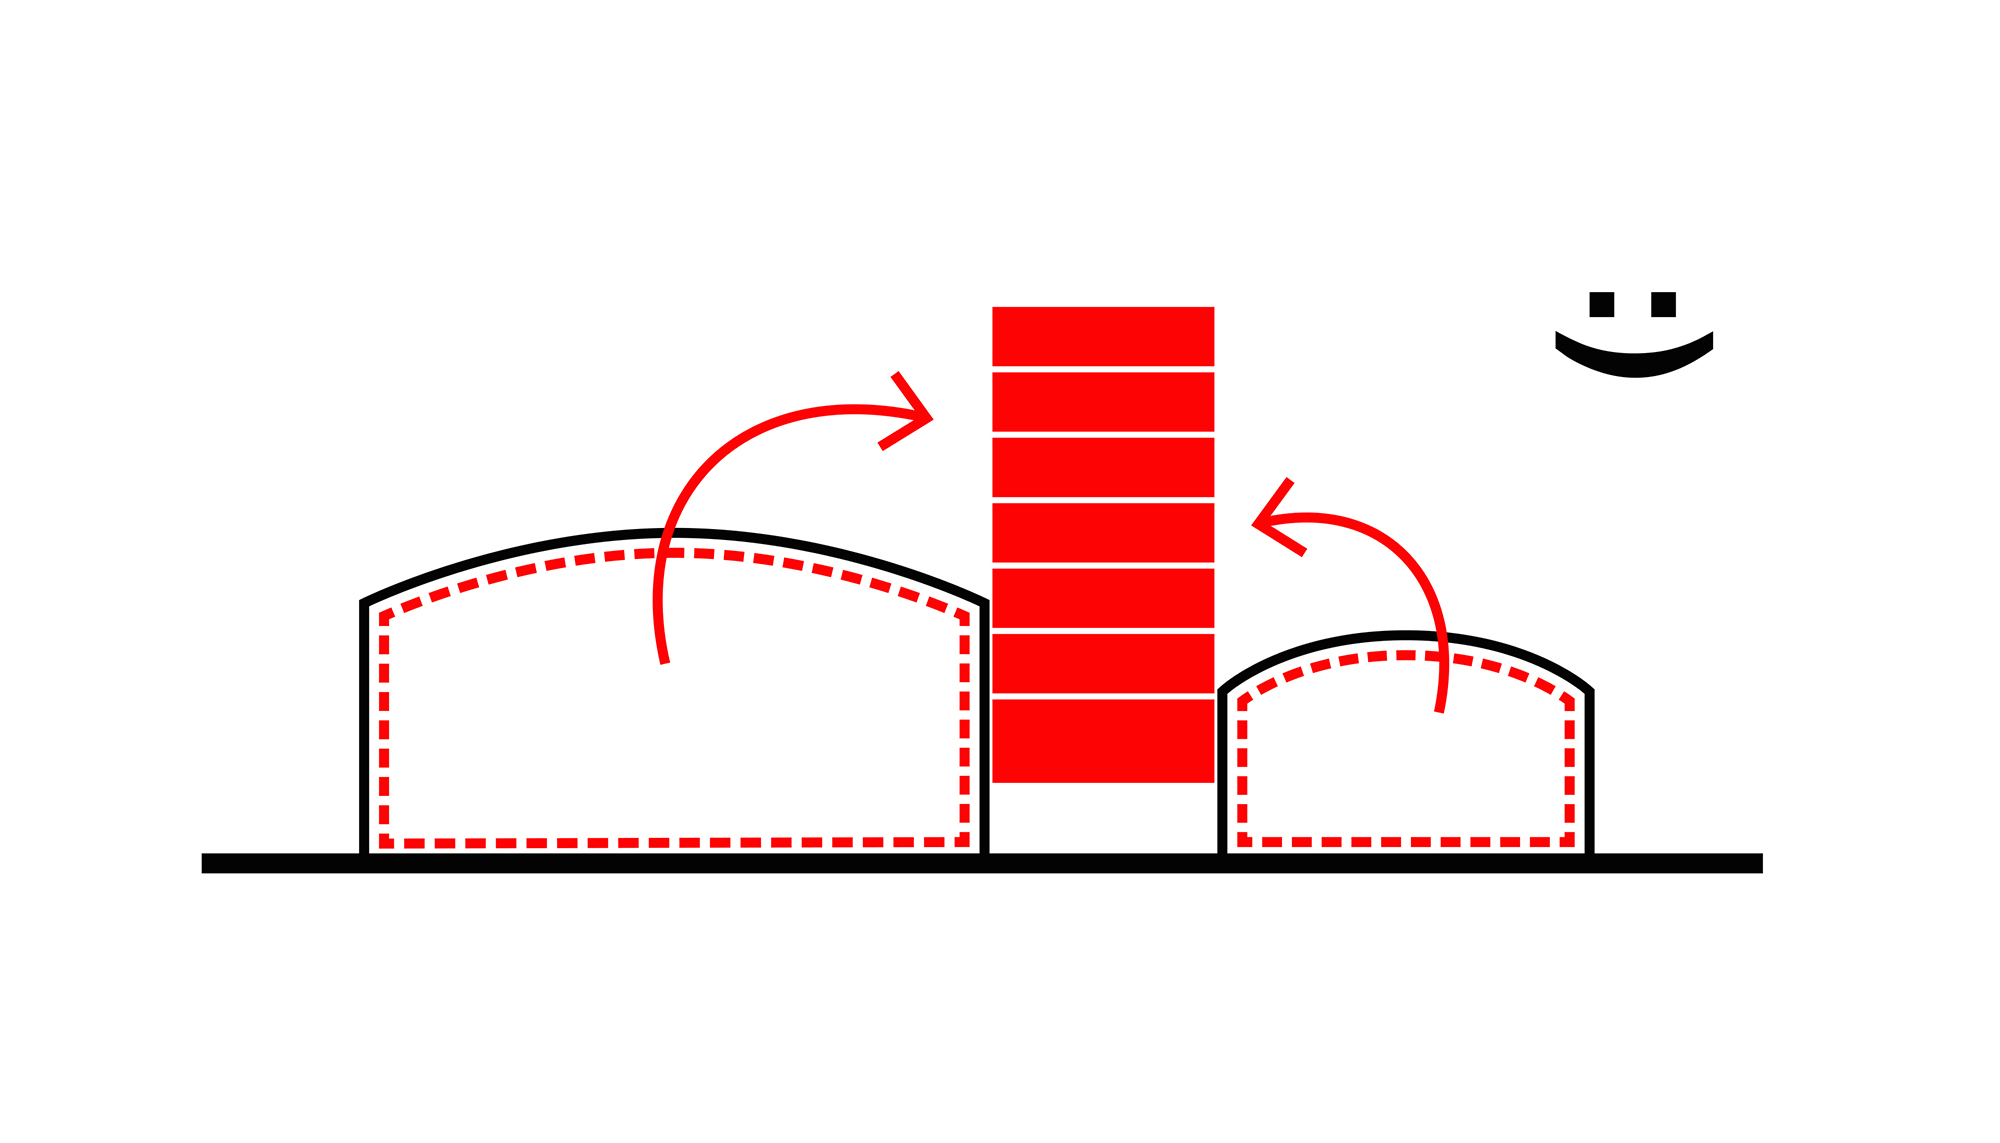 VVOUU_diagrams_section-2.jpg